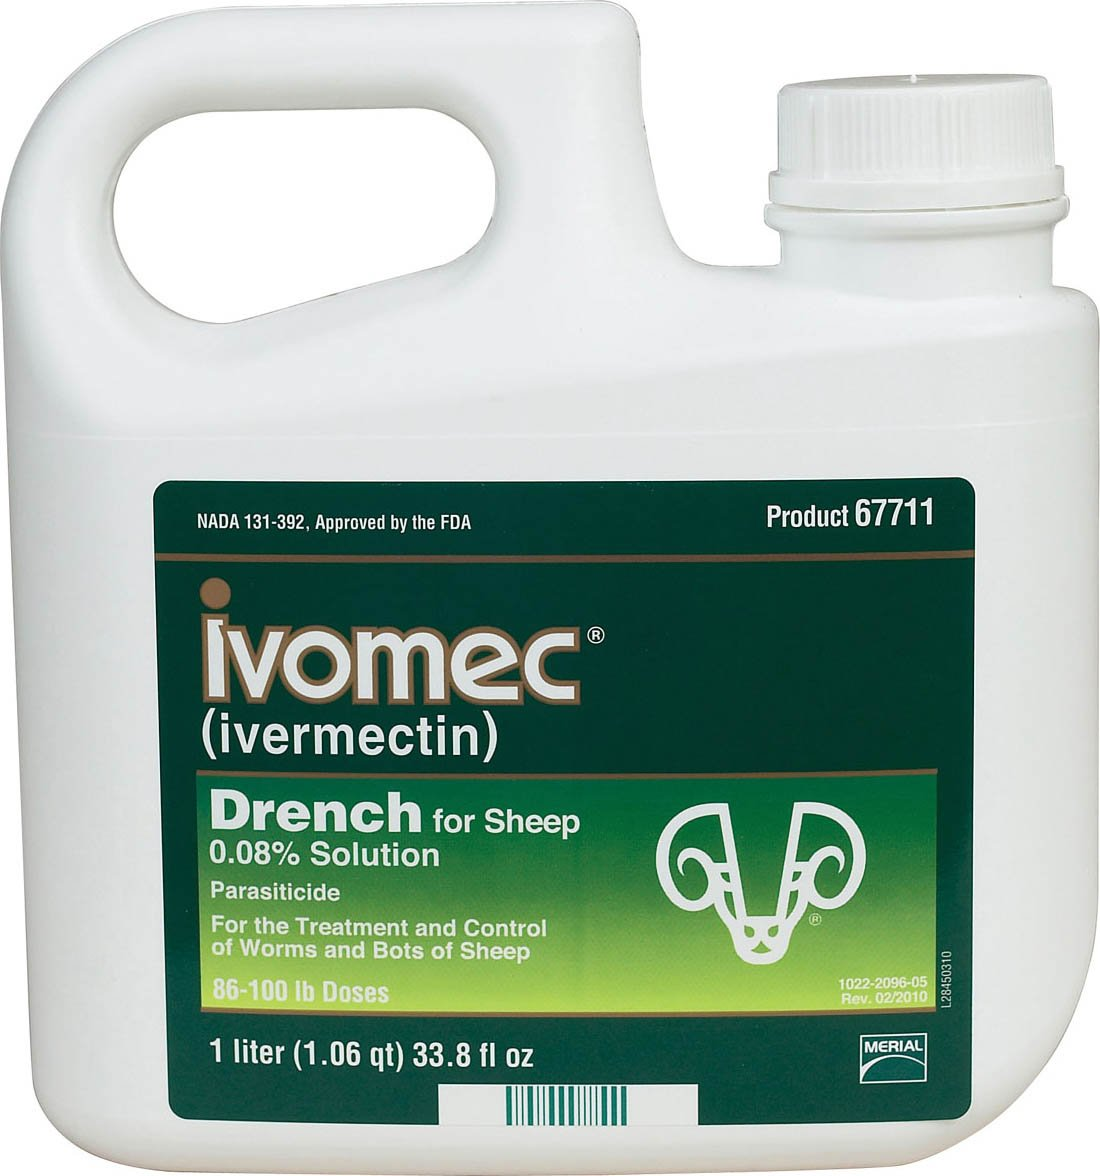 Merial 140921 Ivomec Parasiticide Drench for Sheep, 1 Liter by Merial